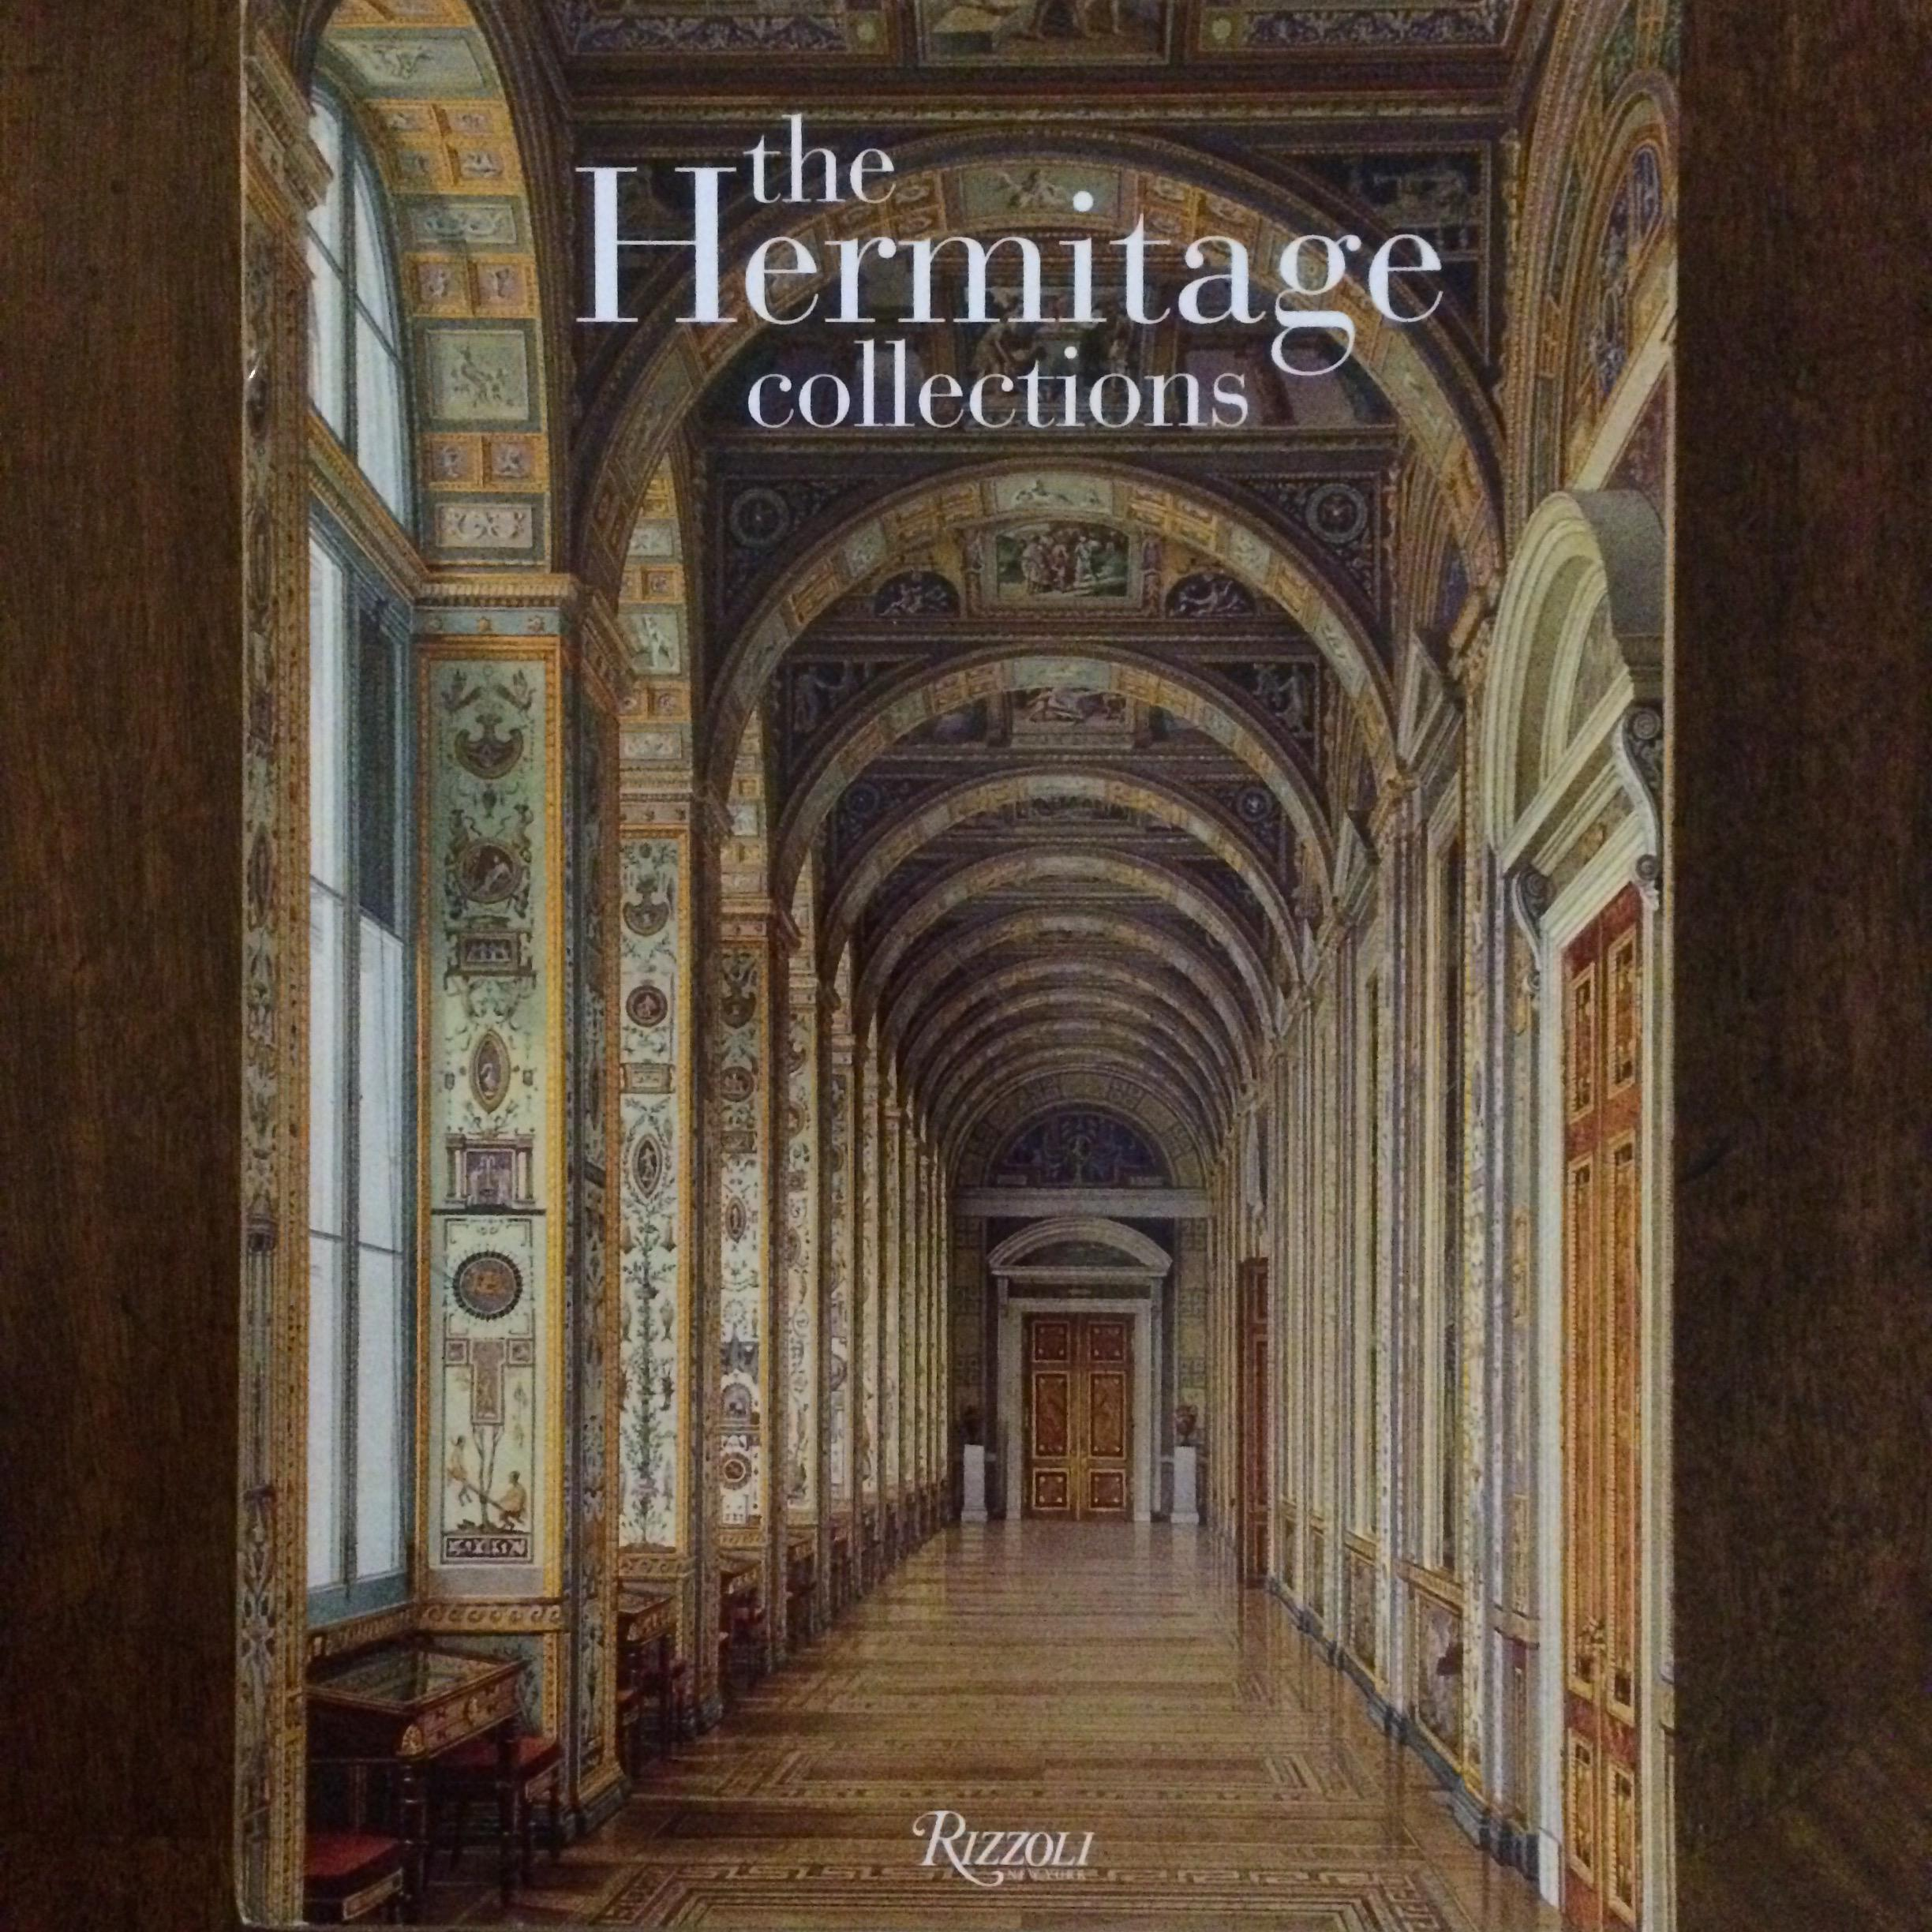 The Hermitage Collections